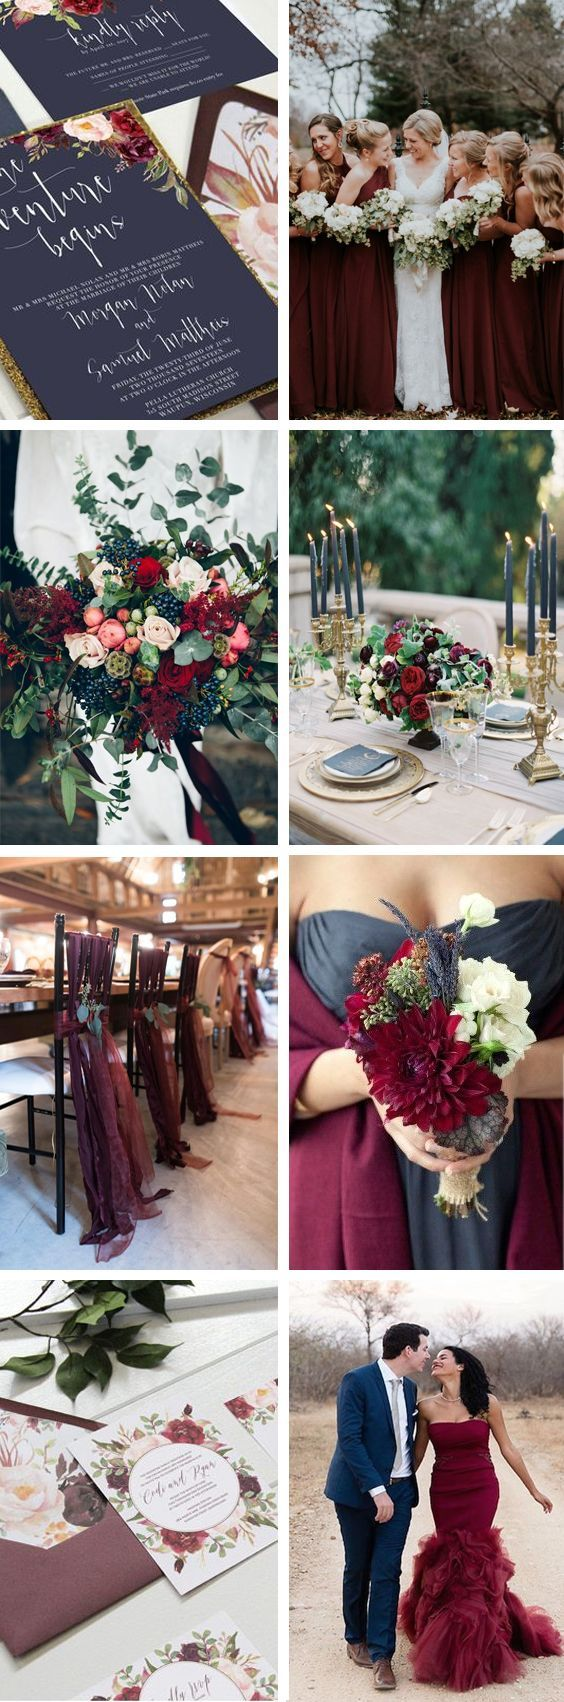 Navy and marsala wedding. Navy wedding. Marsala wedding. Burgundy wedding. Marsala table setting. Maroon bridesmaids dresses. Navy gold marsala wedding invitations by Unica Forma. Natural navy wedding bouquet.